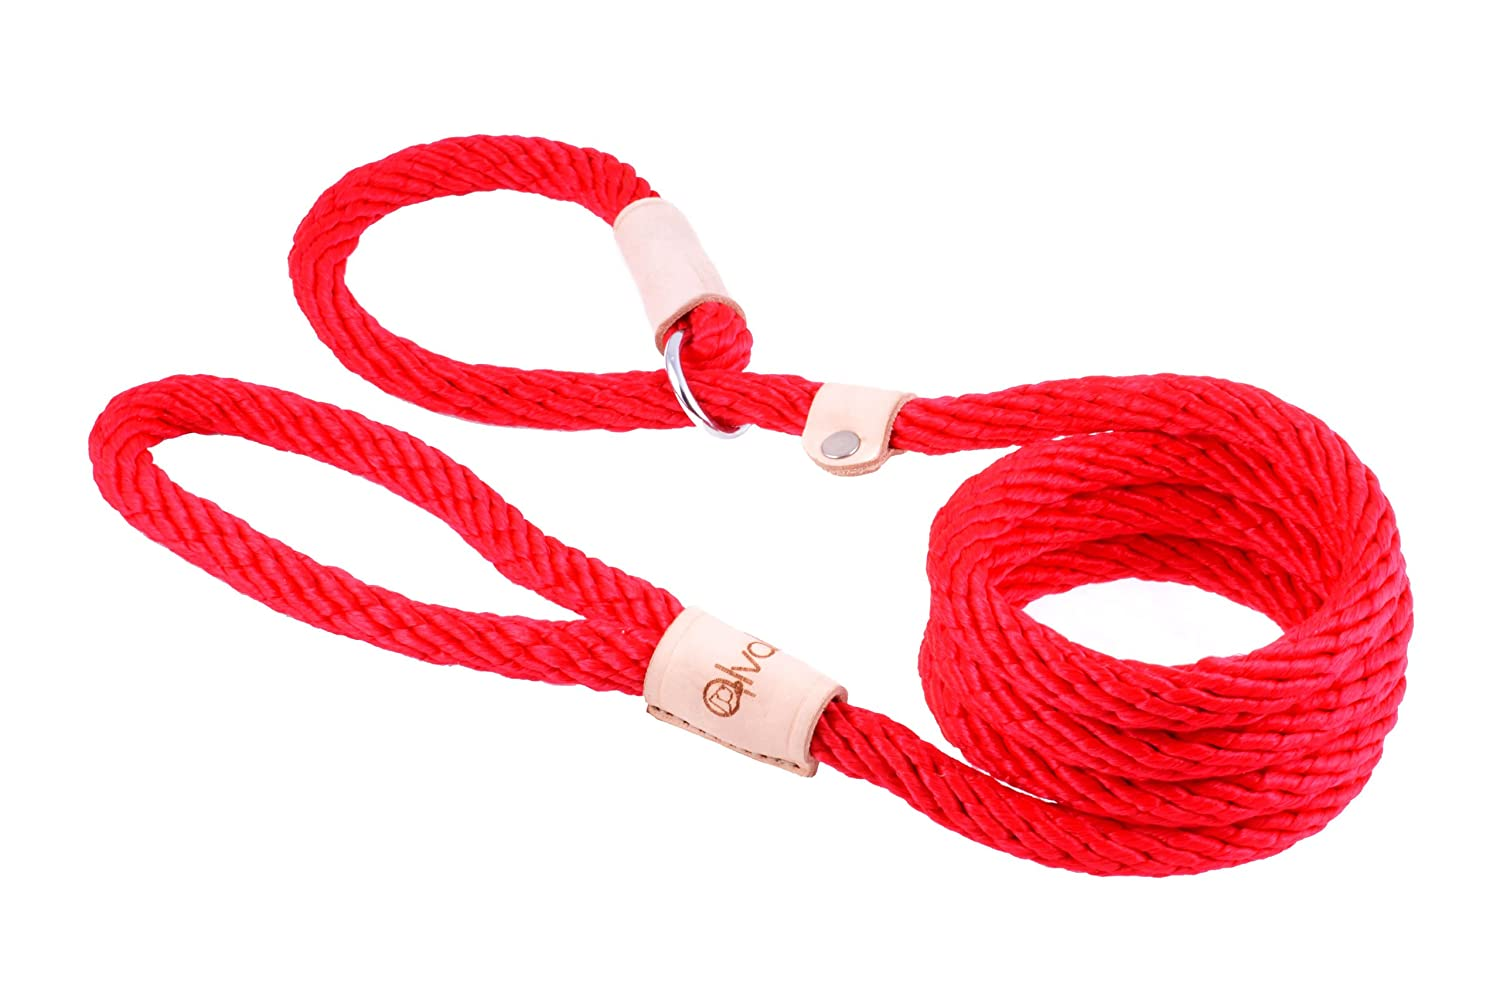 Red Alvalley Red Sport Slip Lead with Leather Stop for Dogs Made of Strong Multifilament Polypropylene Rope (13mm X 183cm or 1 2in X 6ft)